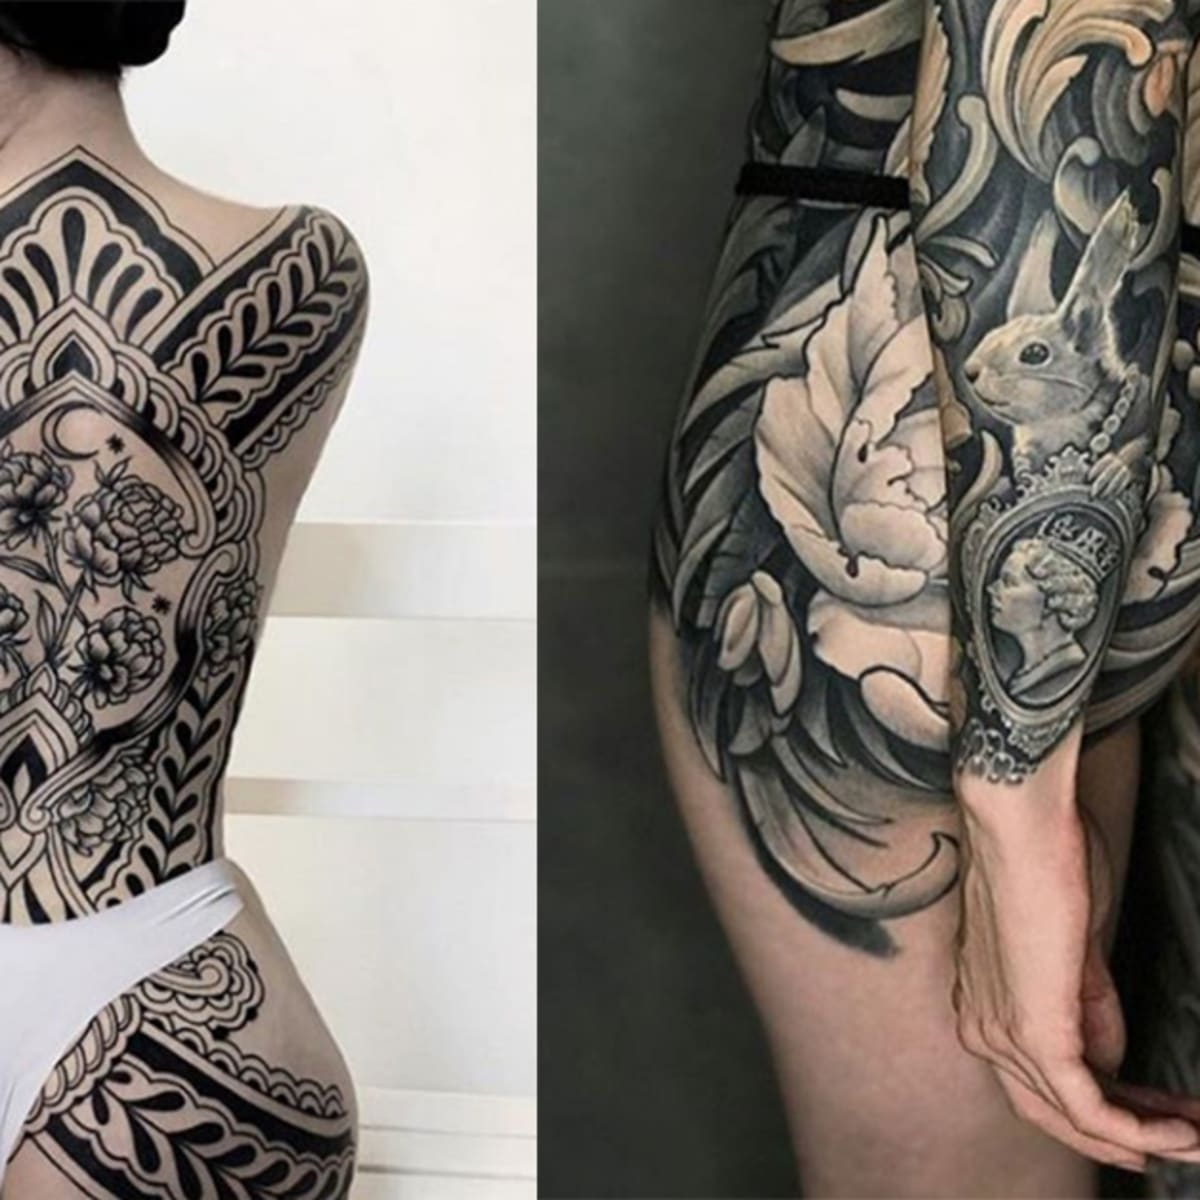 50 Sexy Tattoos For Women Tattoo Ideas Artists And Models